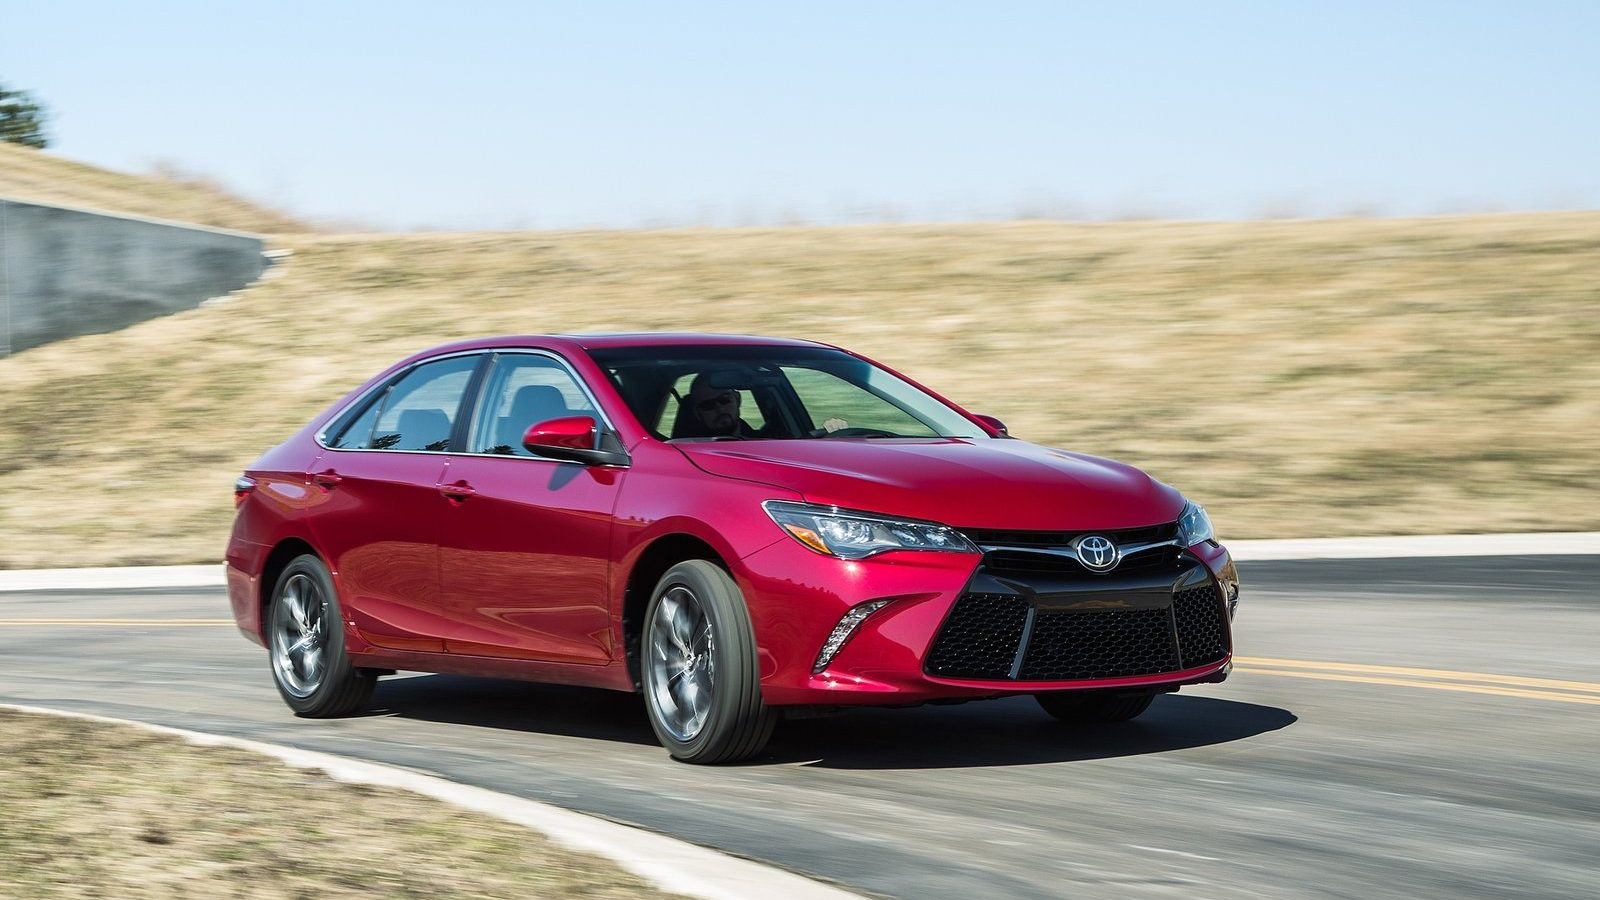 An image of a Toyota Camry outdoors, one of Consumer Reports' best used hybrid cars.